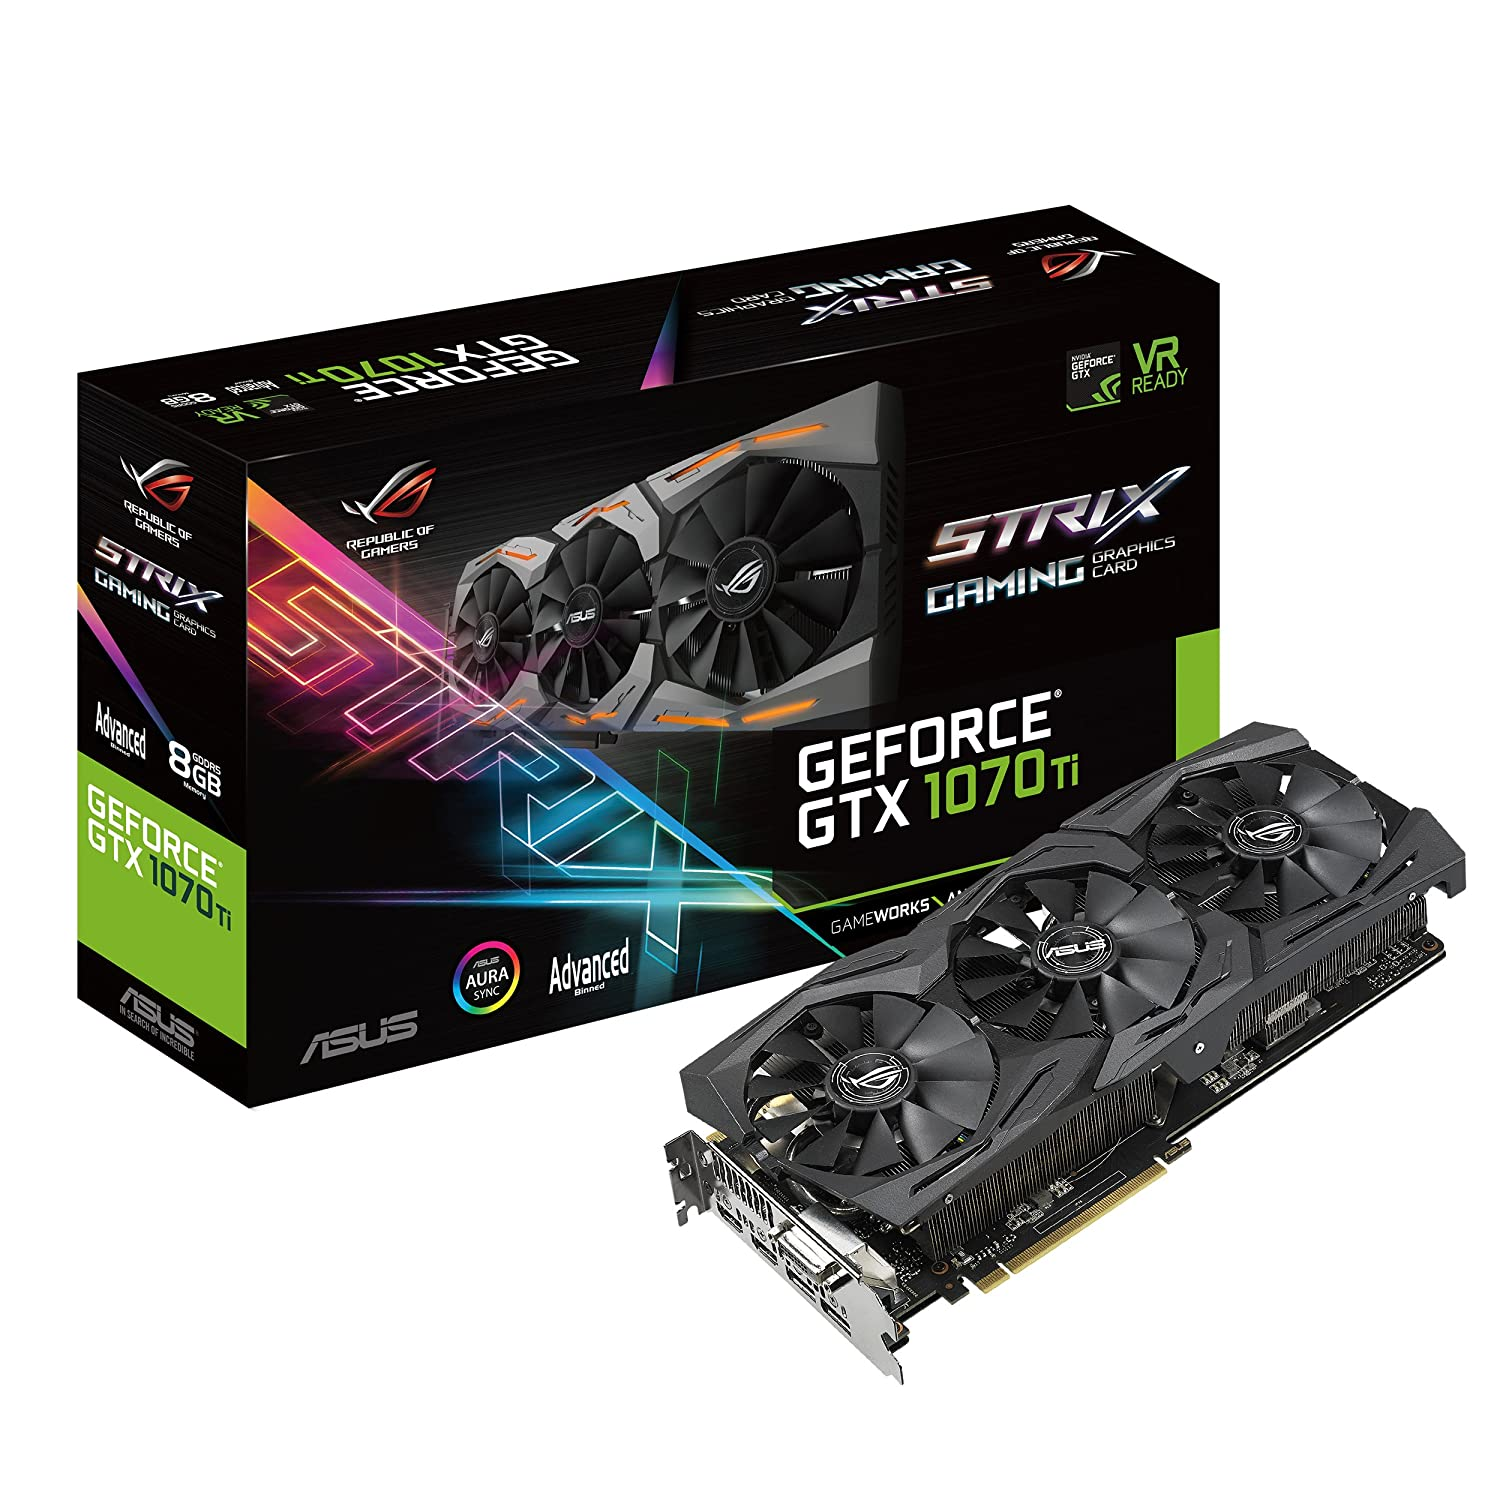 ASUS GeForce ROG Strix GTX 1070 Ti